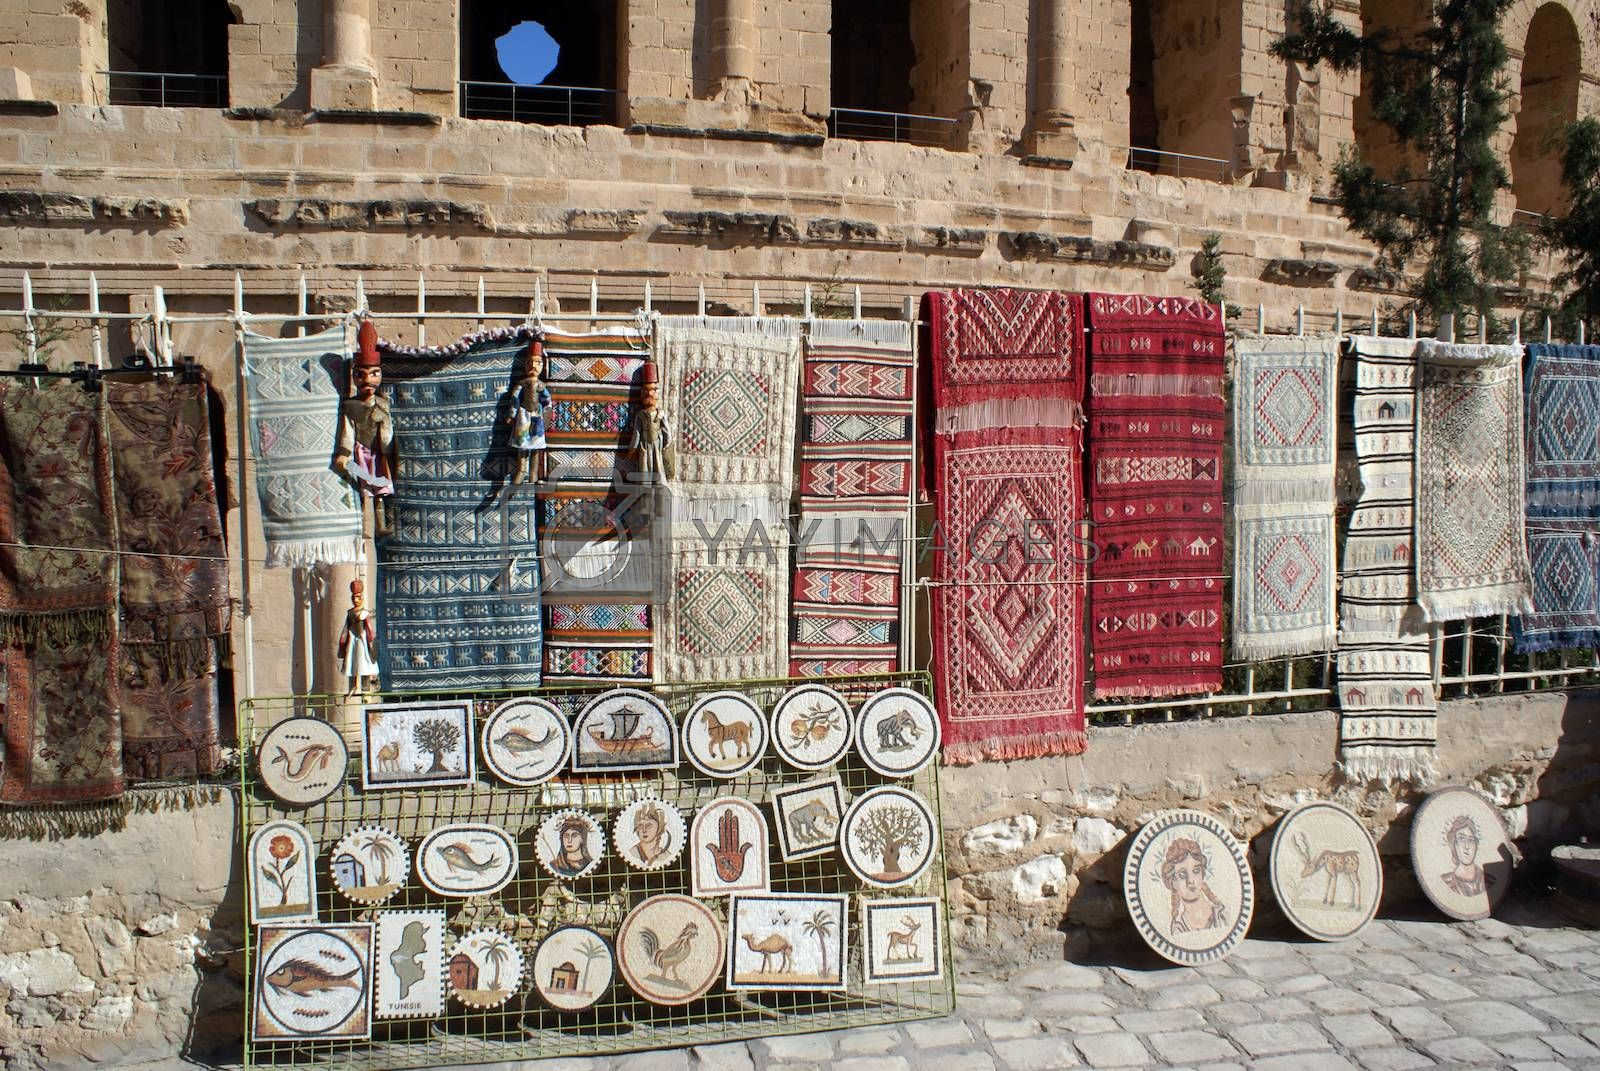 Souvenirs near the wall of roman theater in El-Jem, Tunisia